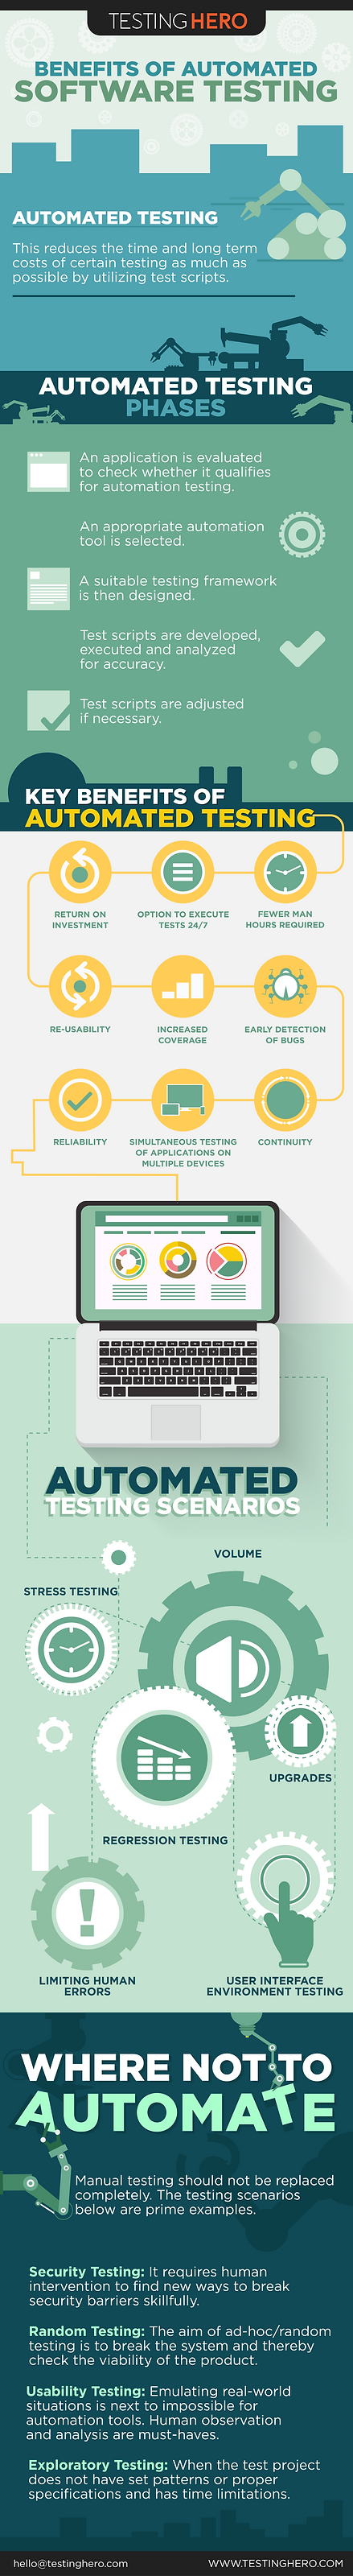 Benefits Of Automated Software Testing Infographic | Testing Hero